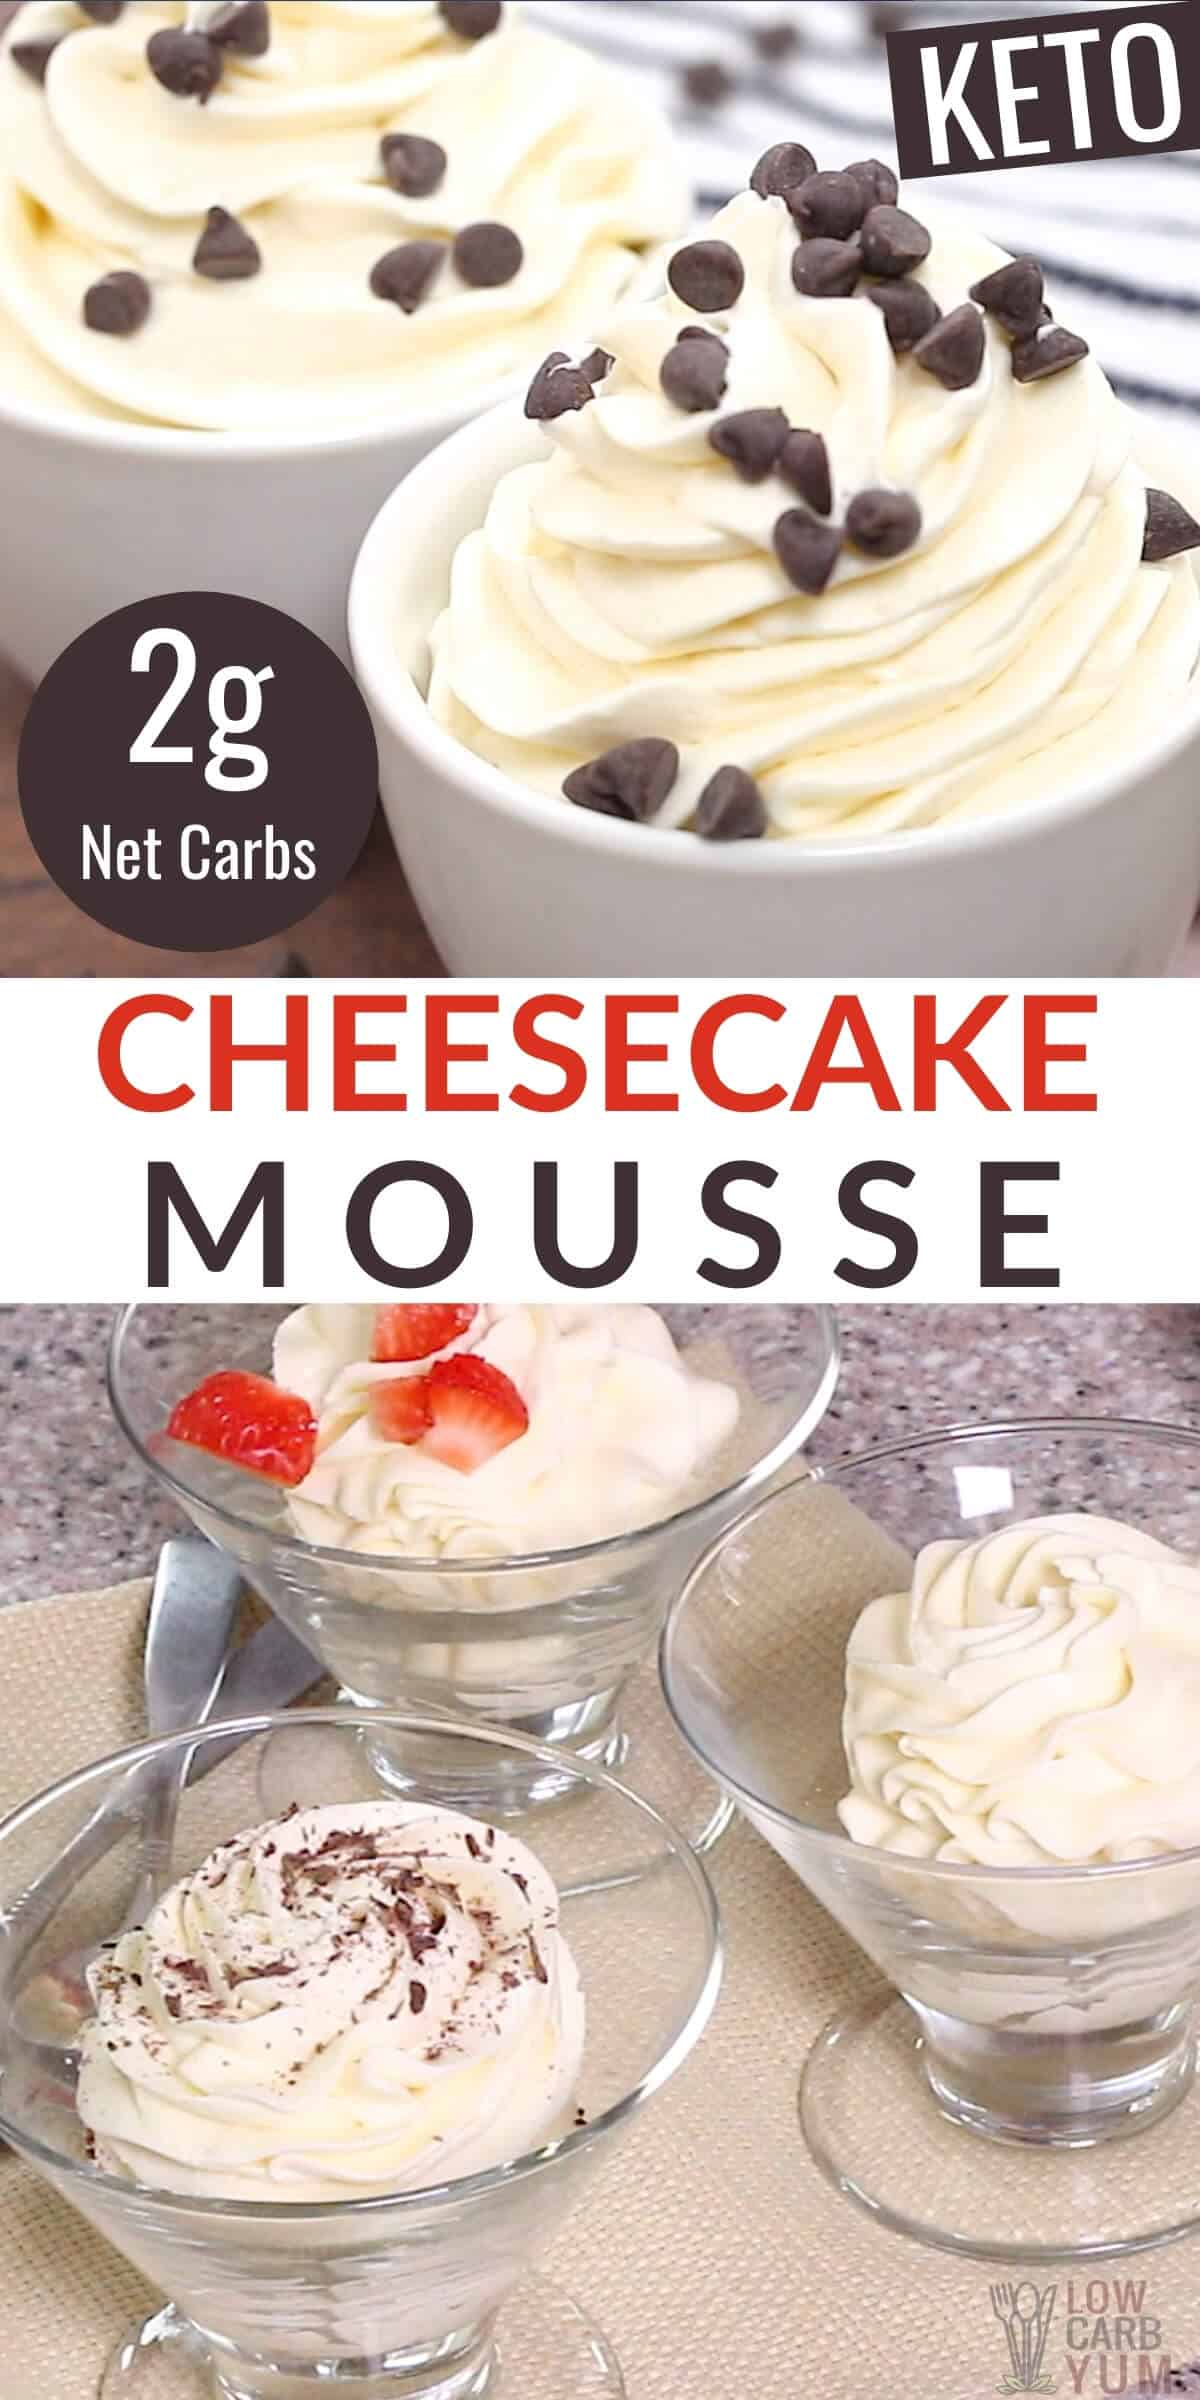 keto cream cheese mousse dessert recipe